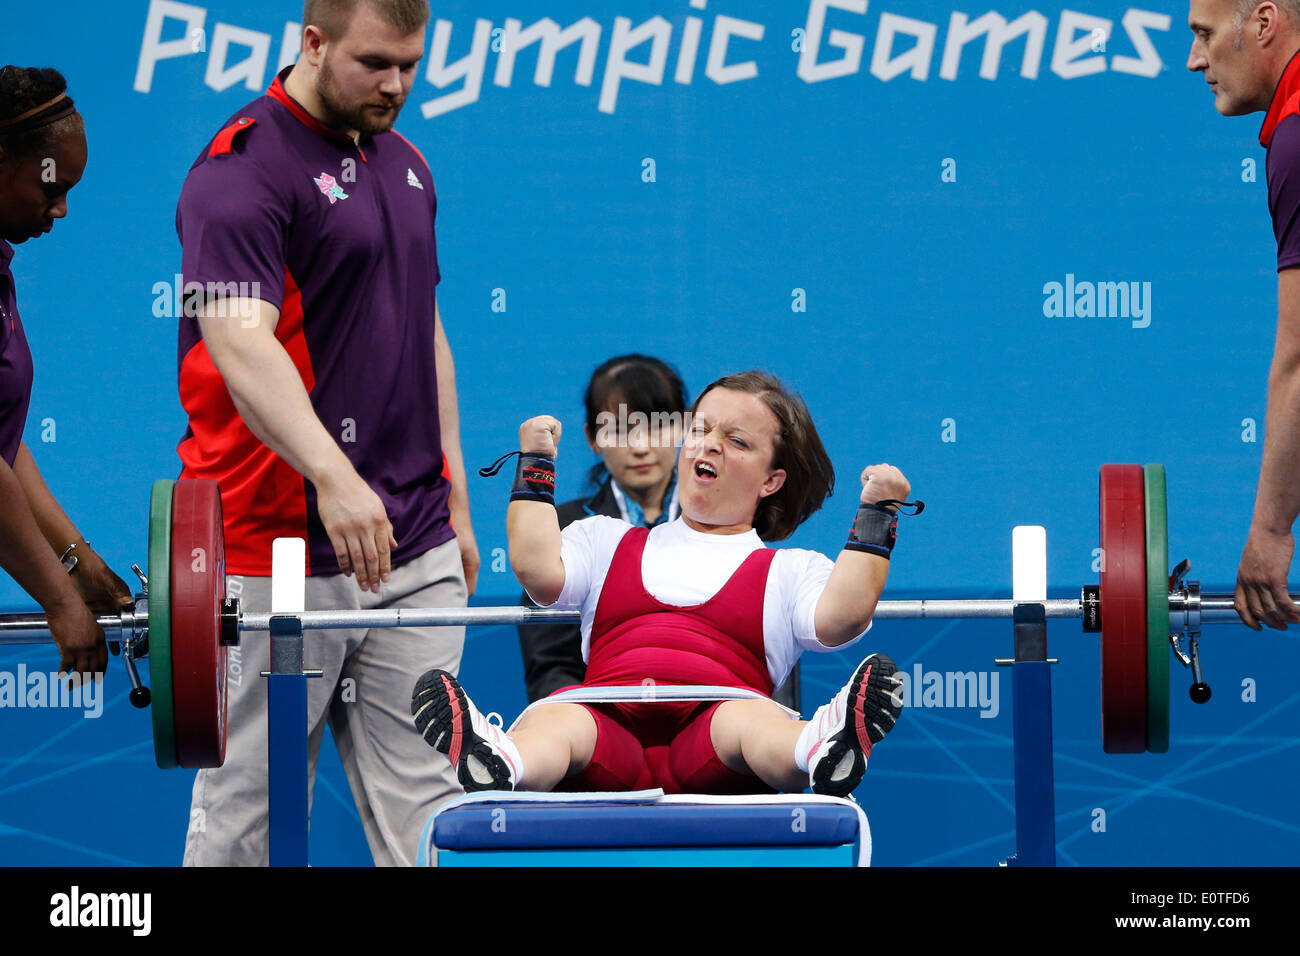 Taoying Fu 4 Paralympic medals in powerlifting Taoying Fu 4 Paralympic medals in powerlifting new foto